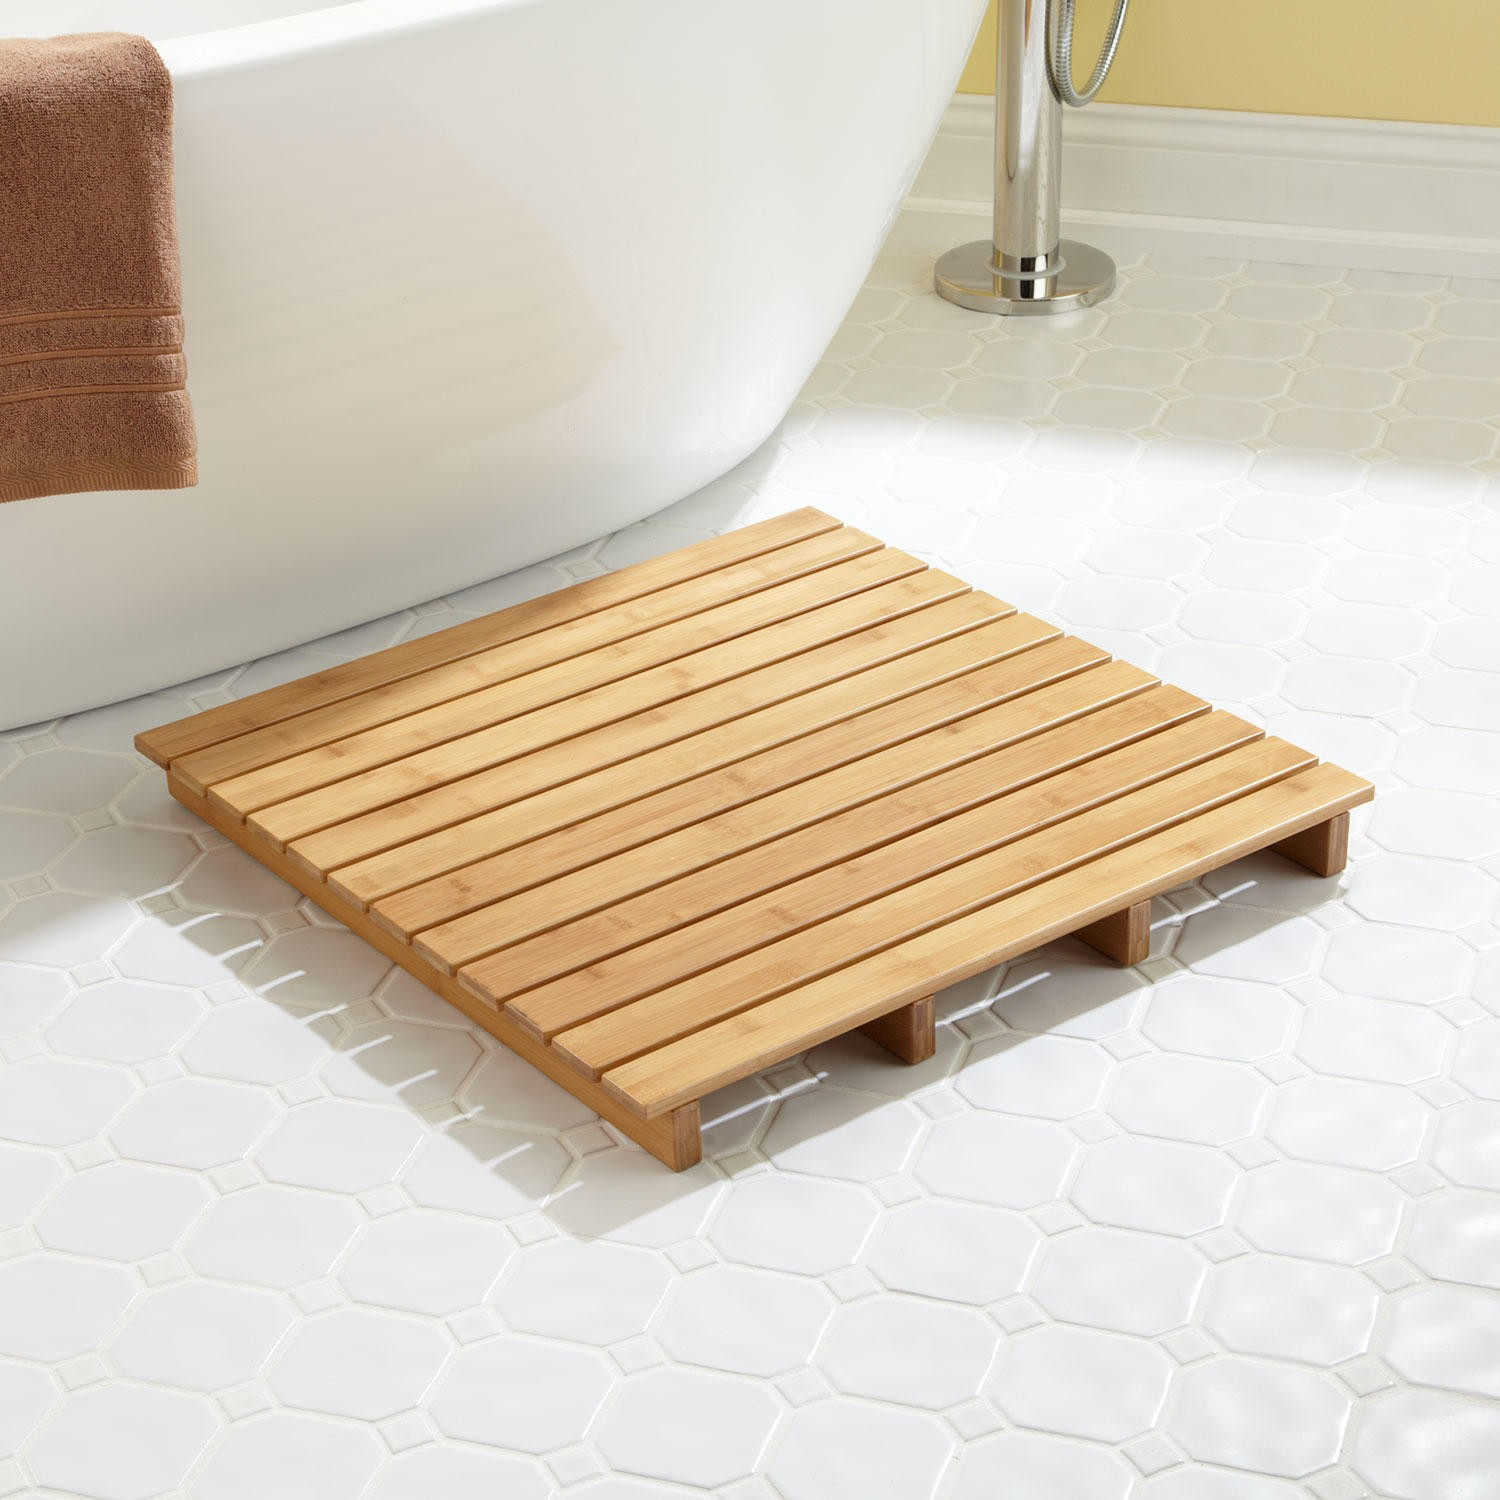 Bath Mat Ideas To Make Your Bathroom Feel More Like A Spa - Long bath mats and rugs for bathroom decorating ideas